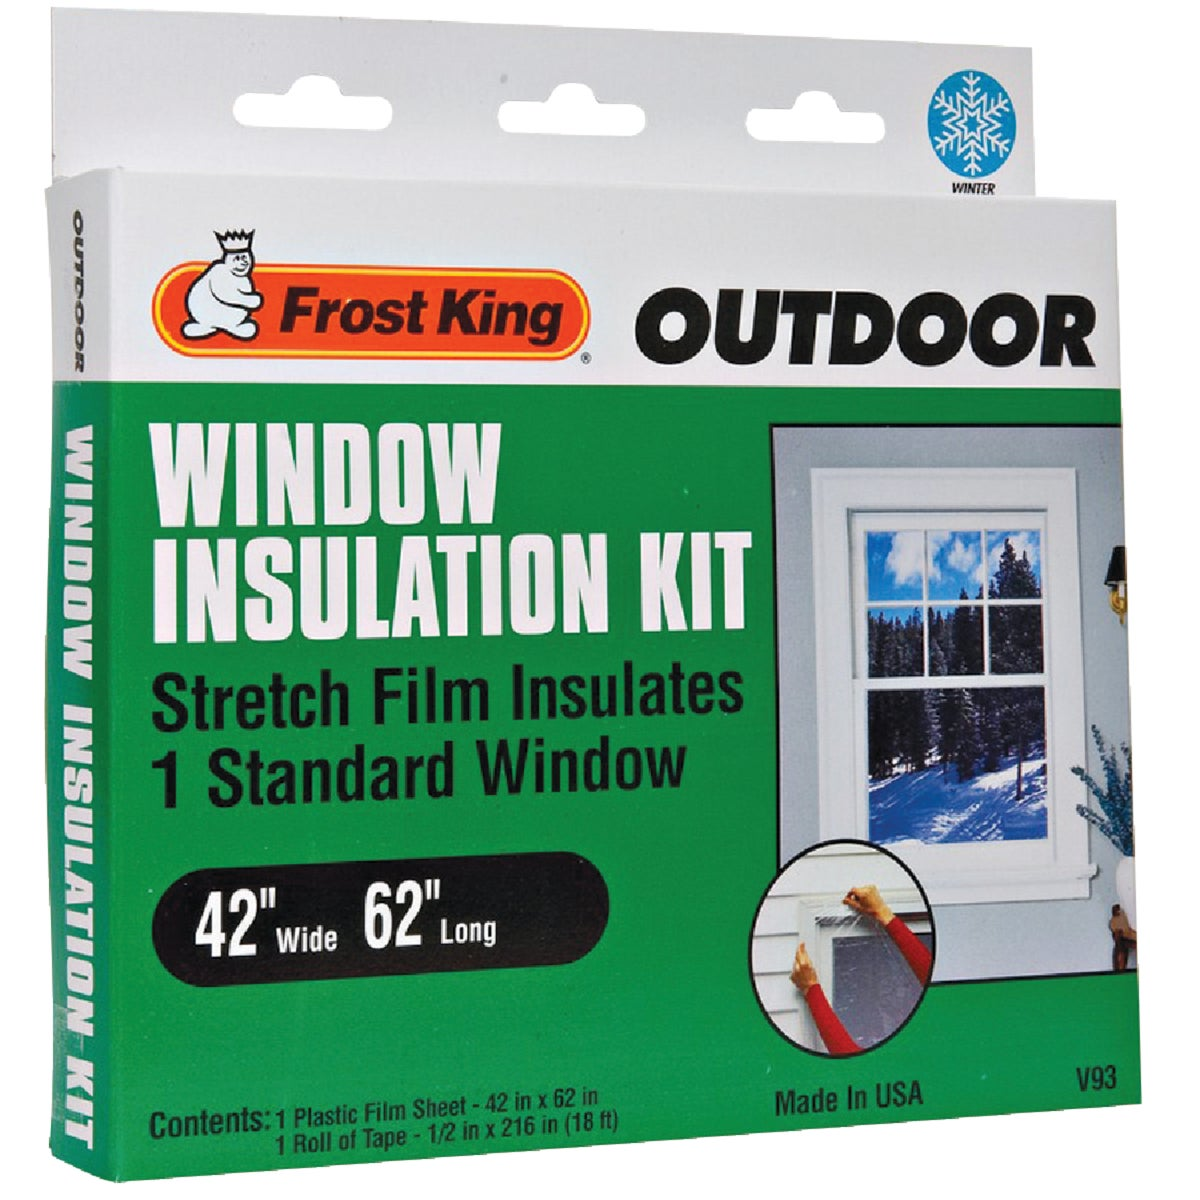 Thermwell Prods. Co. WINDOW STRETCH FILM KIT V93H